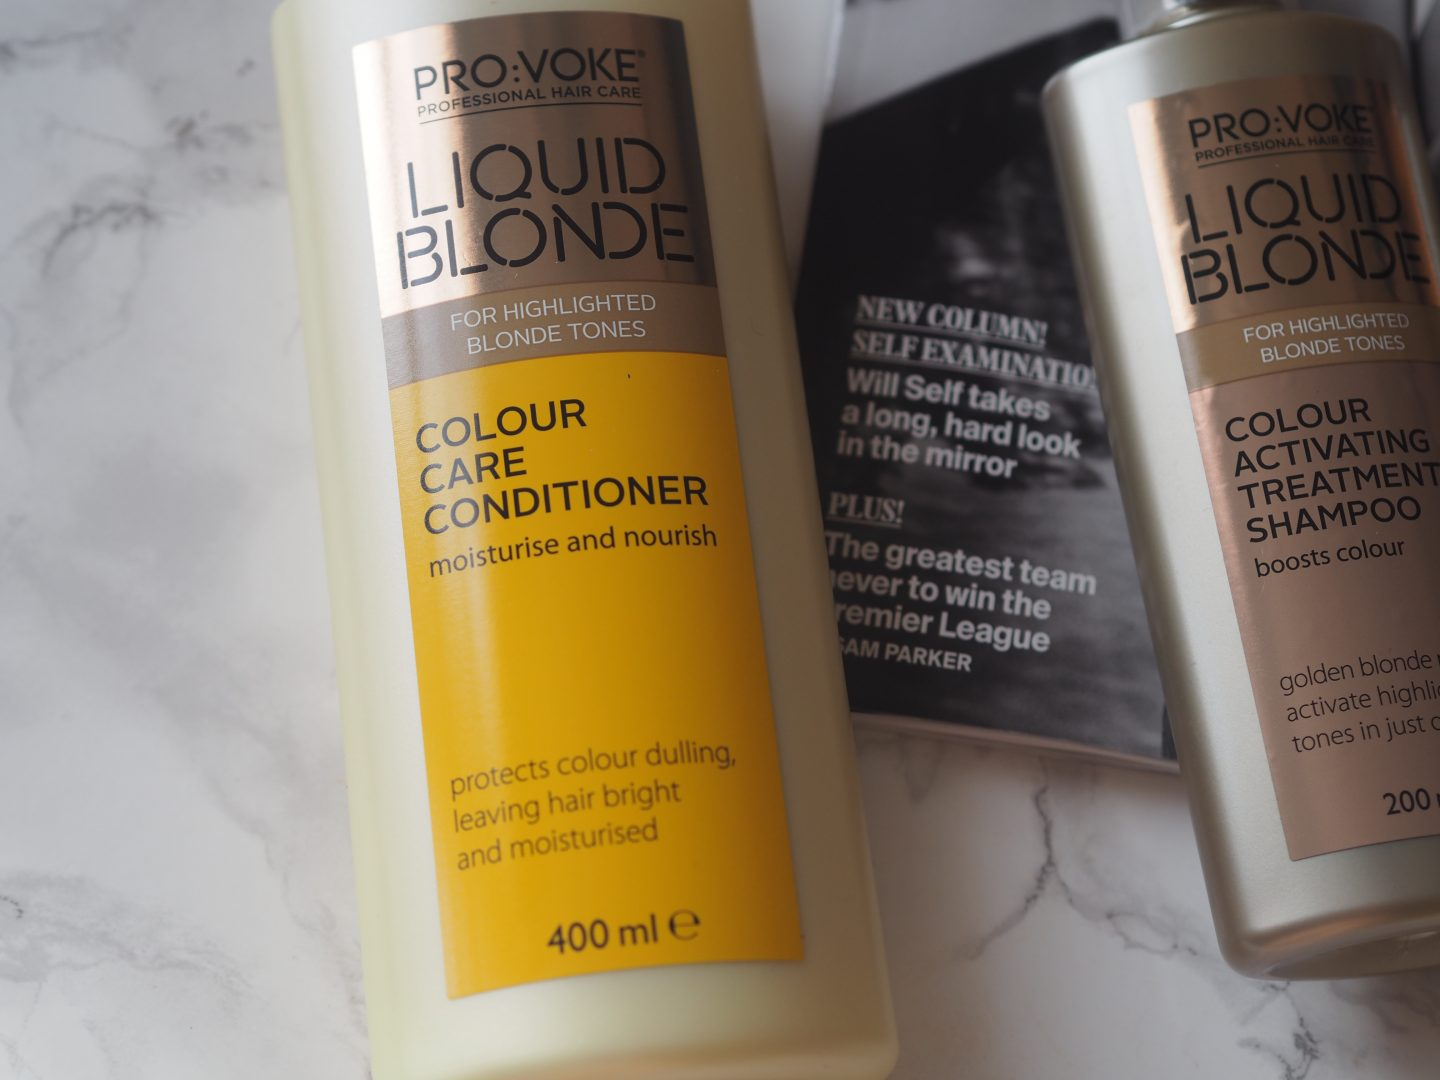 Pro:voke Liquid Blonde - Product: Colour Care Conditioner & Colour Activating Treatment Shampoo